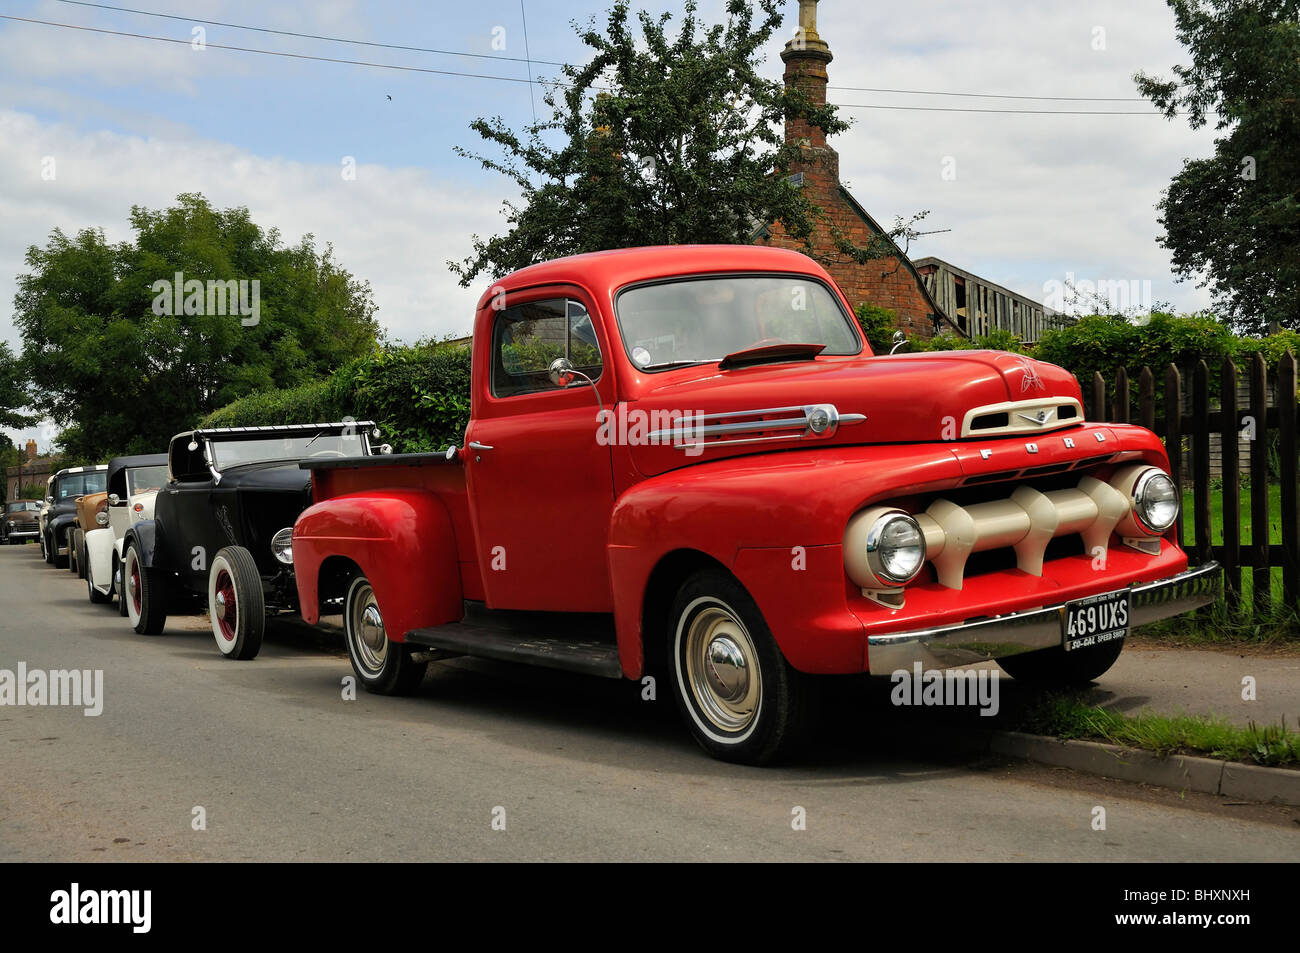 Vintage Red Ford Pickup Truck Stock Photos 1941 Hot Rod 1940s Stepside Hotrod Line Up At Shakedown Rocknroll Festival